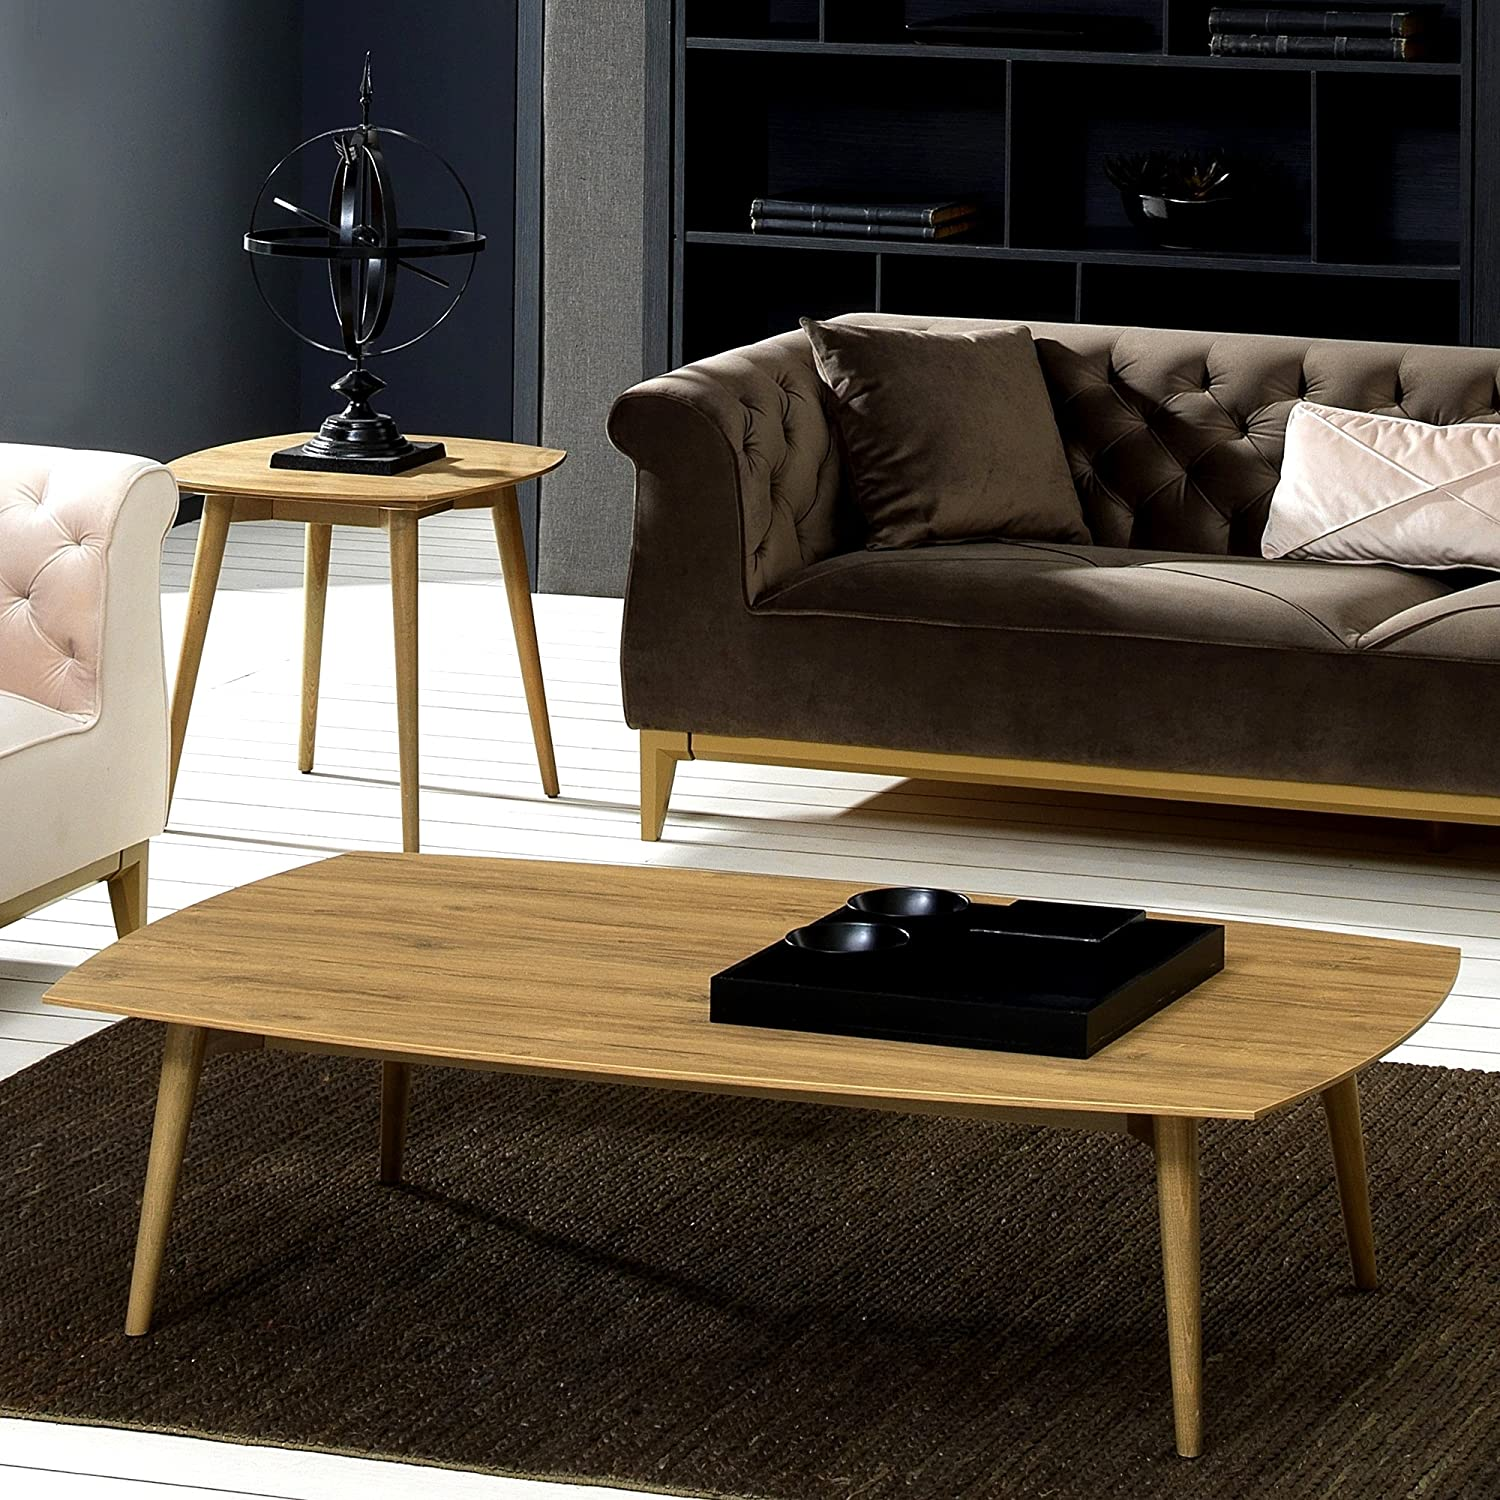 AZUMAYA BLT-229OAK Folding Legs Coffee Center Table Home and Living W41.3 x D20.5 x H13.8 Inches Natural Yellow Oak Color Natural Yellow Oak and Rubber Wood Material